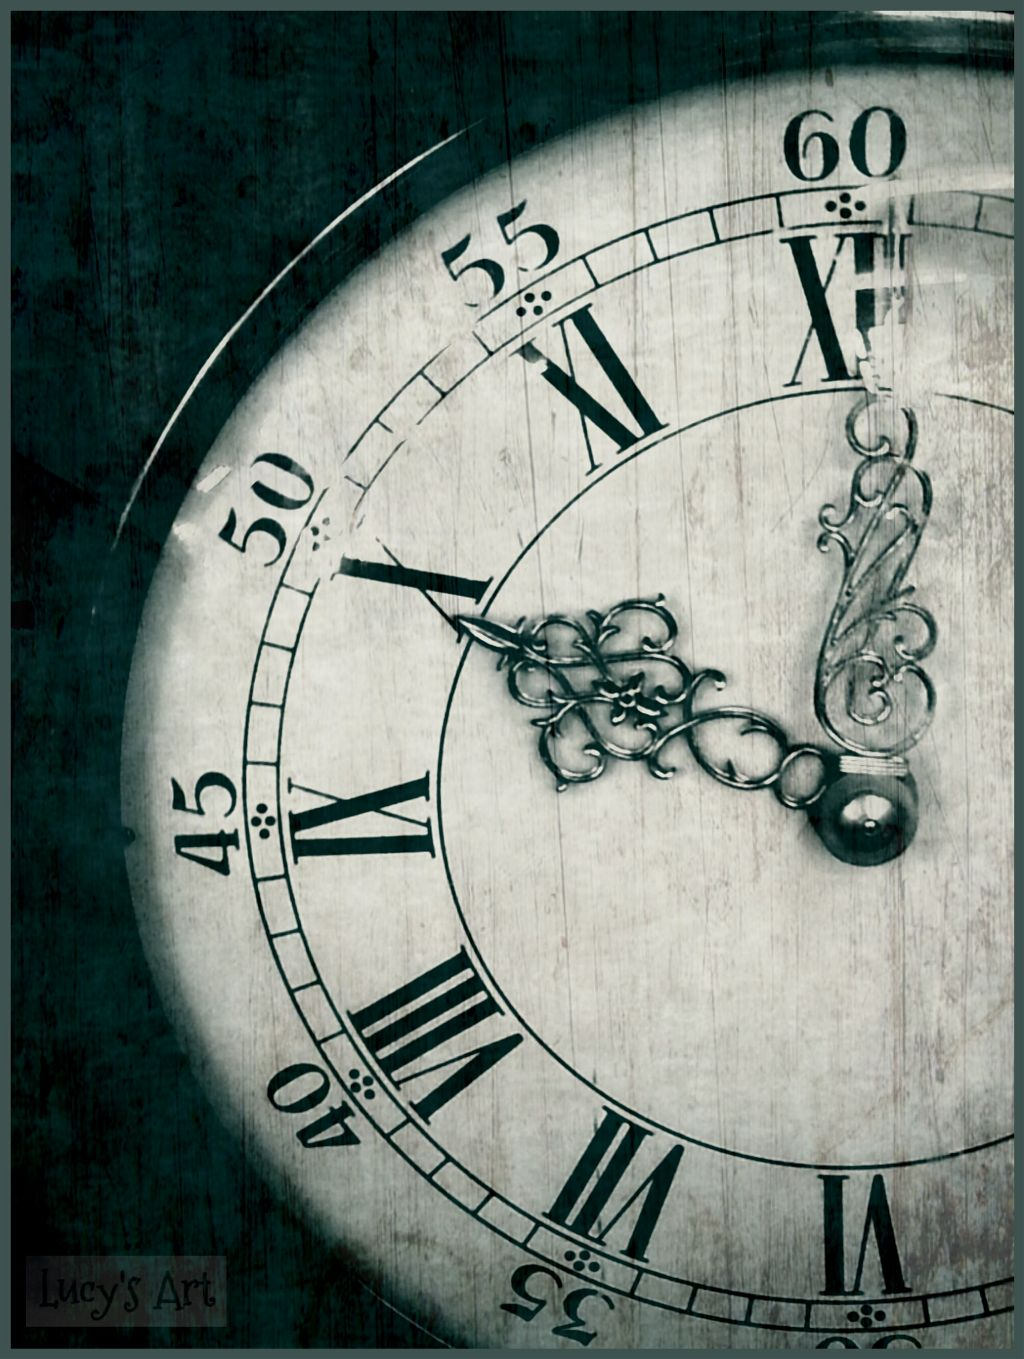 All I want is some time... #photography #old photo #wappapereffect